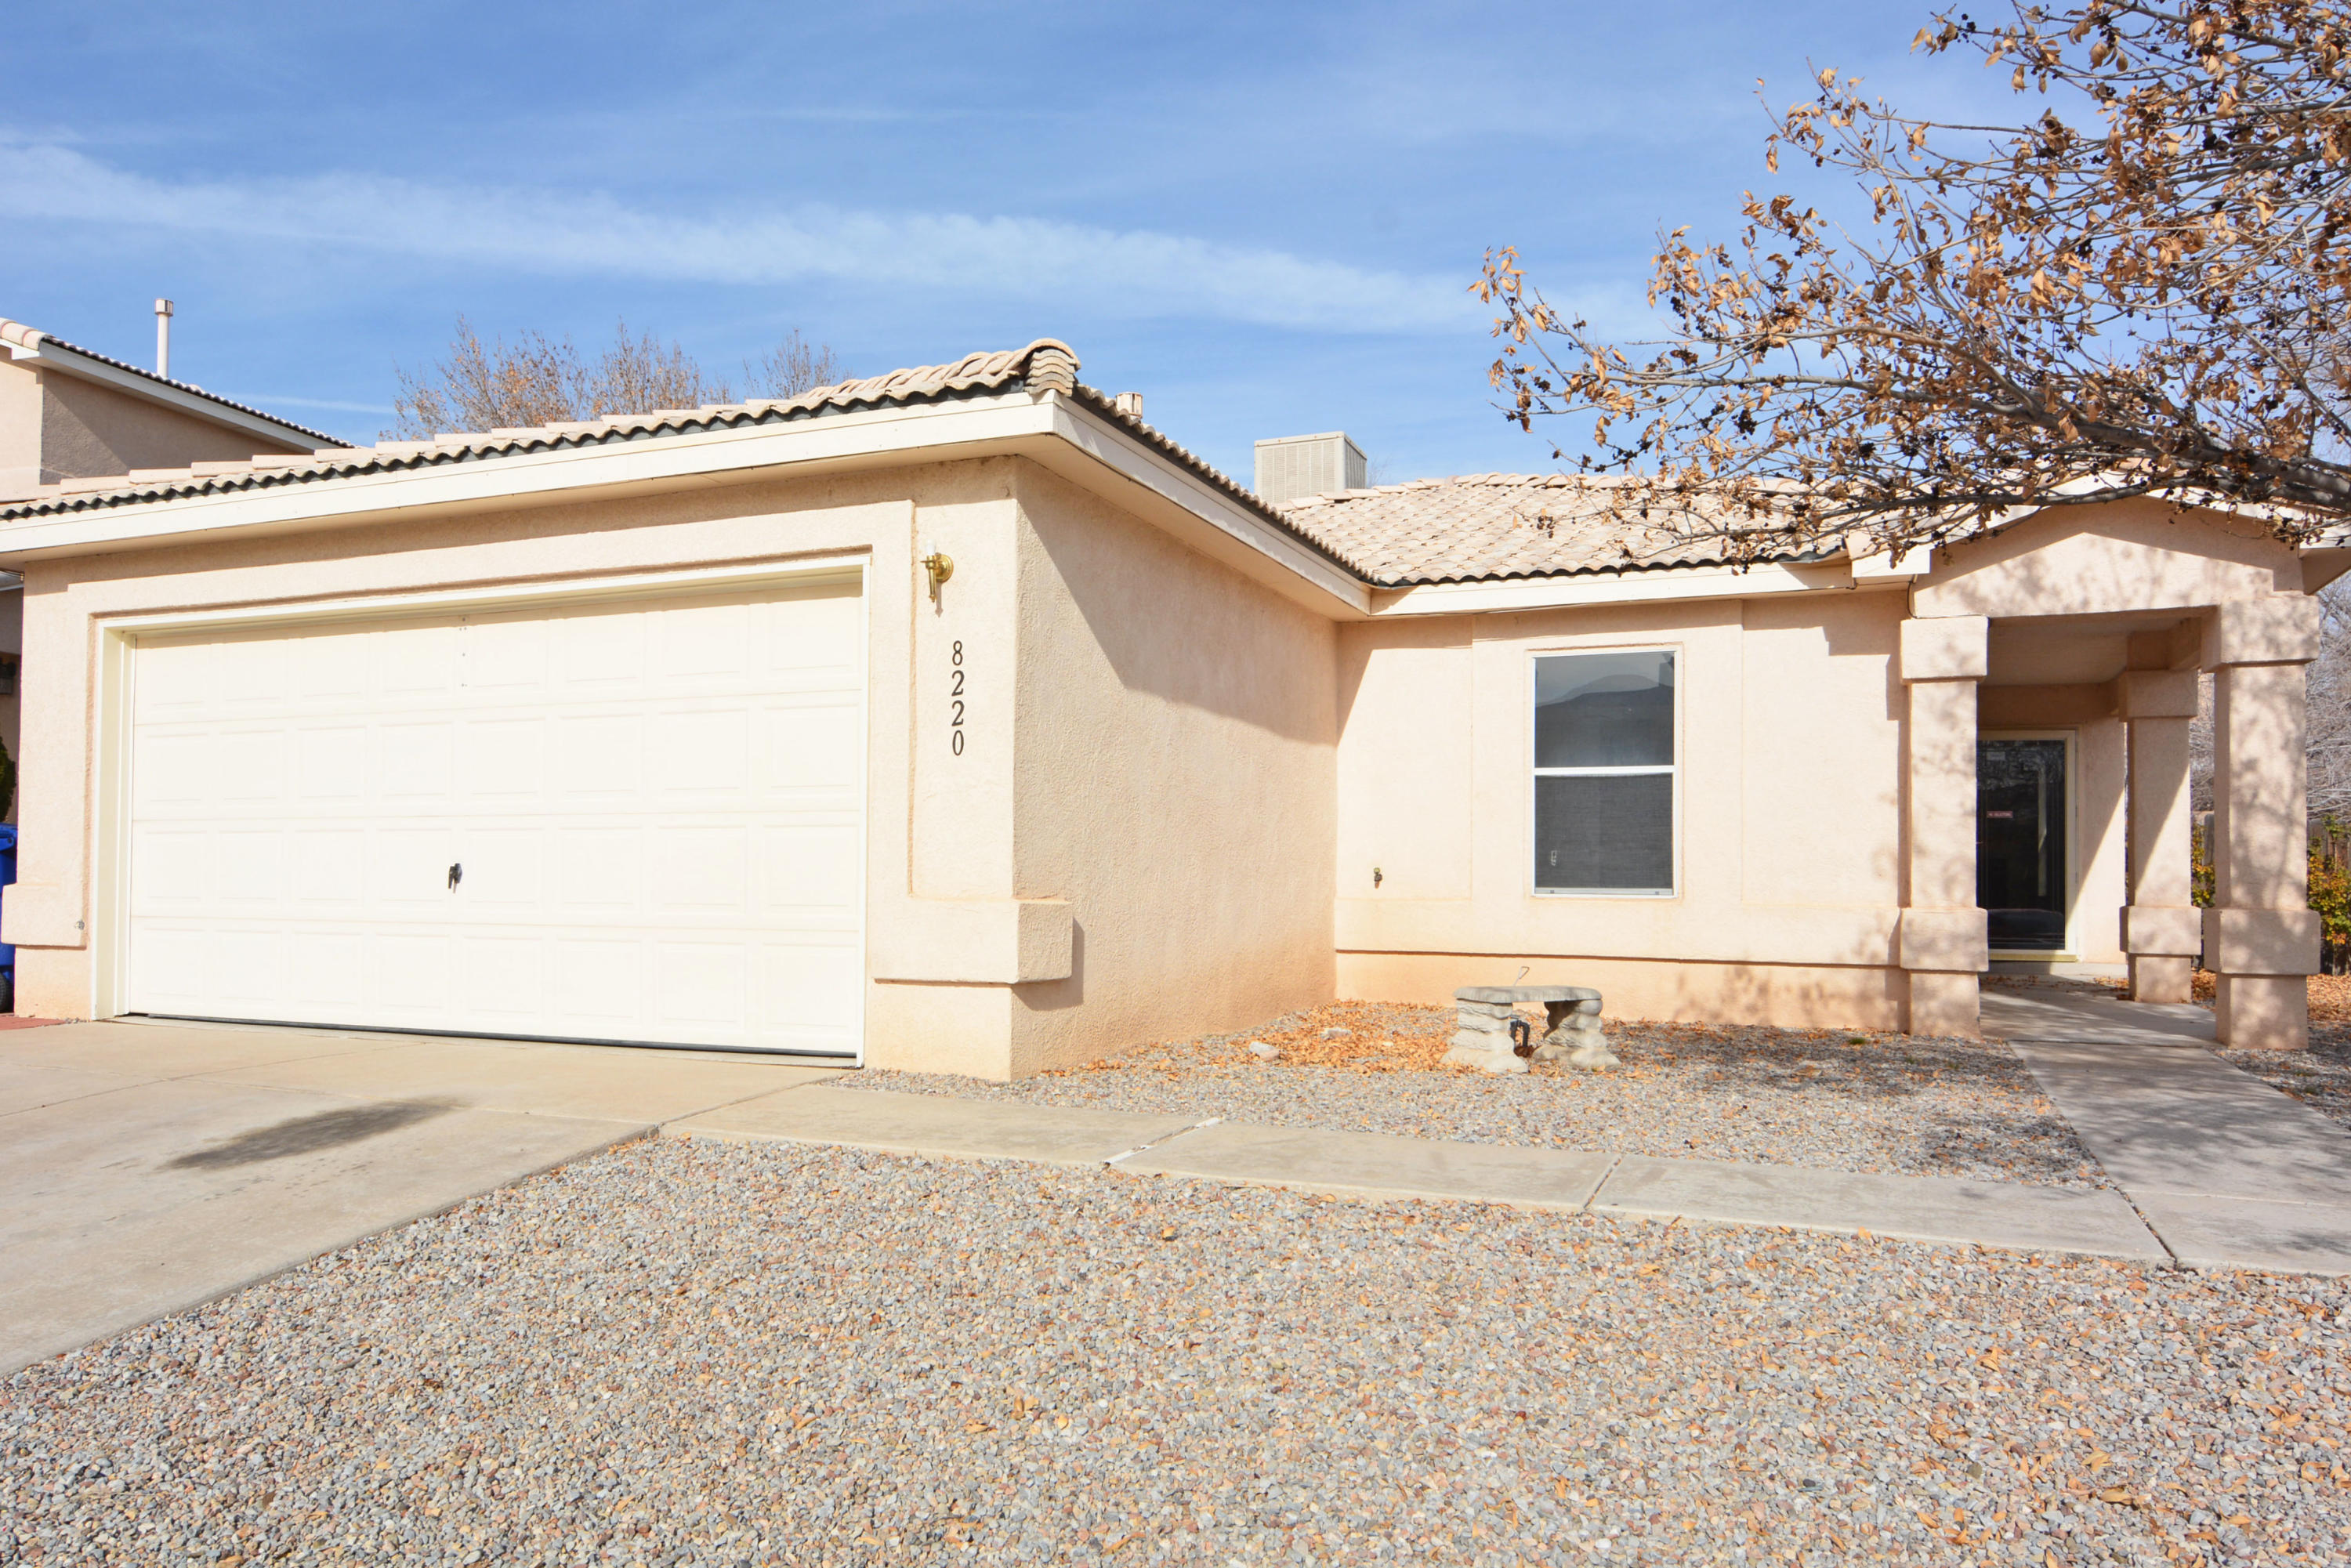 Northwest Albuquerque and Northwest Heights Homes for Sale -  Mountain View,  8220 NW Rancho Paraiso